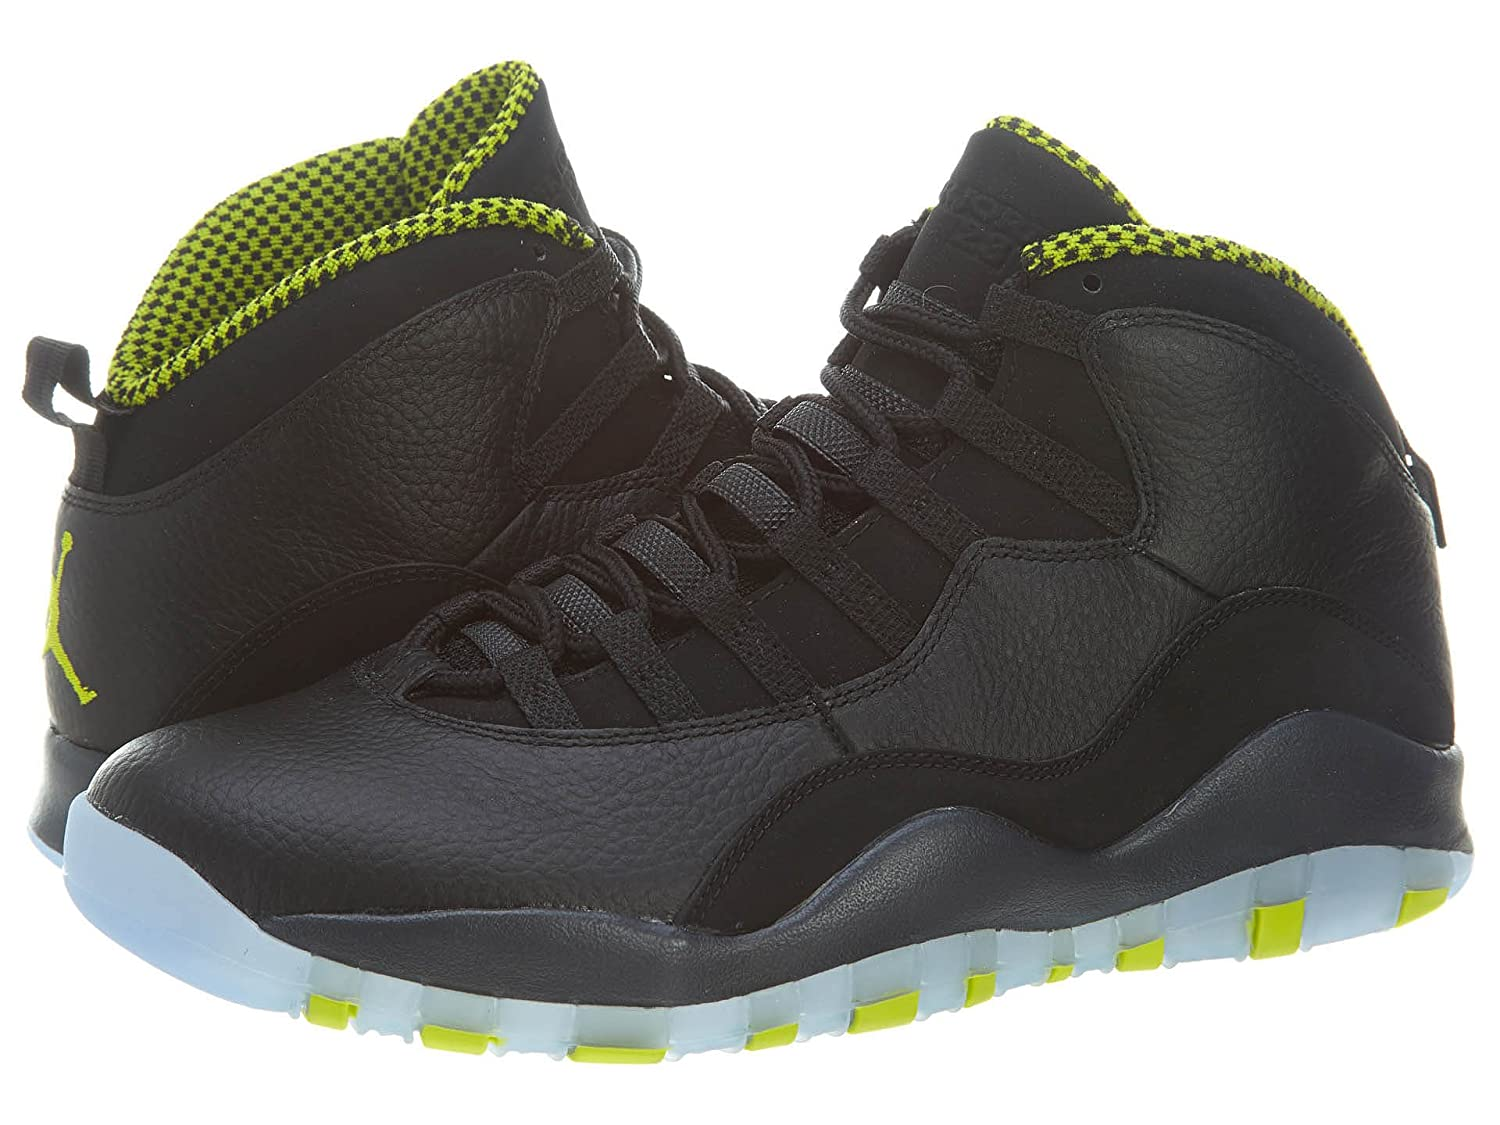 classic fit 9e21e 172f3 Air Jordan Retro 10 Mens Style: 310805-033 Size: 9.5/Black/Vnm Green-Cl  Gry-Anthrct